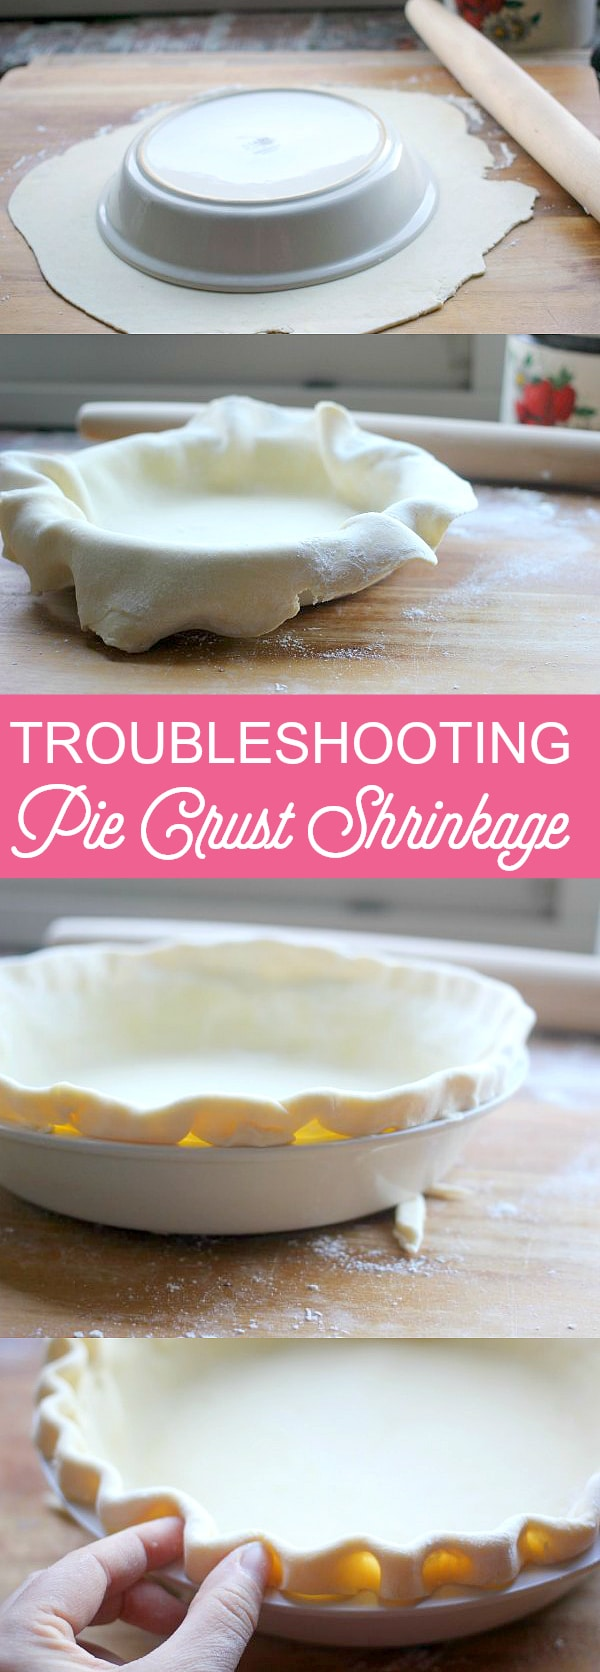 Having difficulties with pie crust shrinkage? Look no further! Follow these 6 easy tips to troubleshoot the problem and you will create the perfect crust every time!